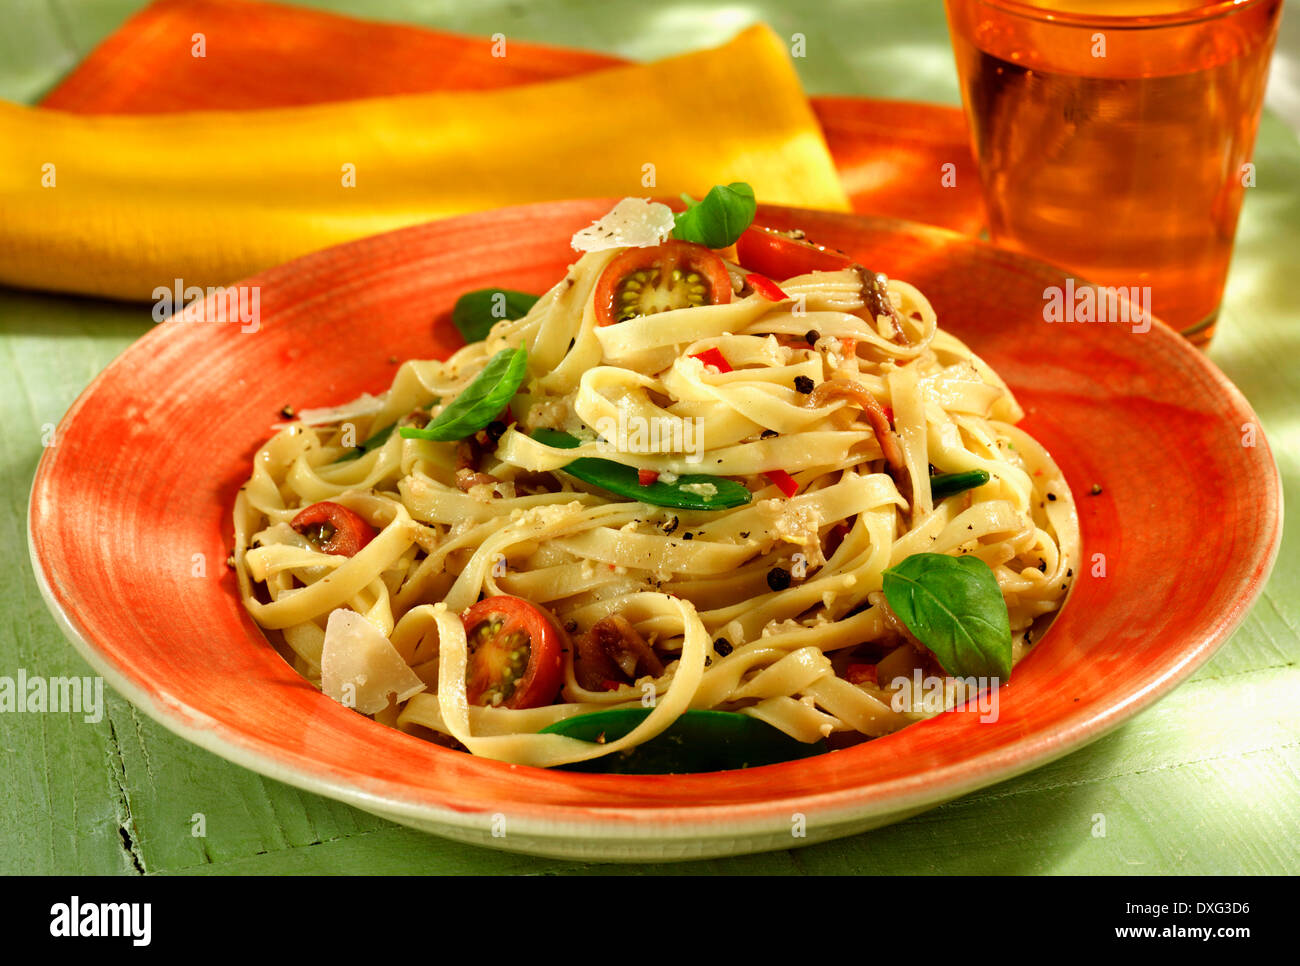 Plate Of Fettuccine With Anchovies And Basil - Stock Image